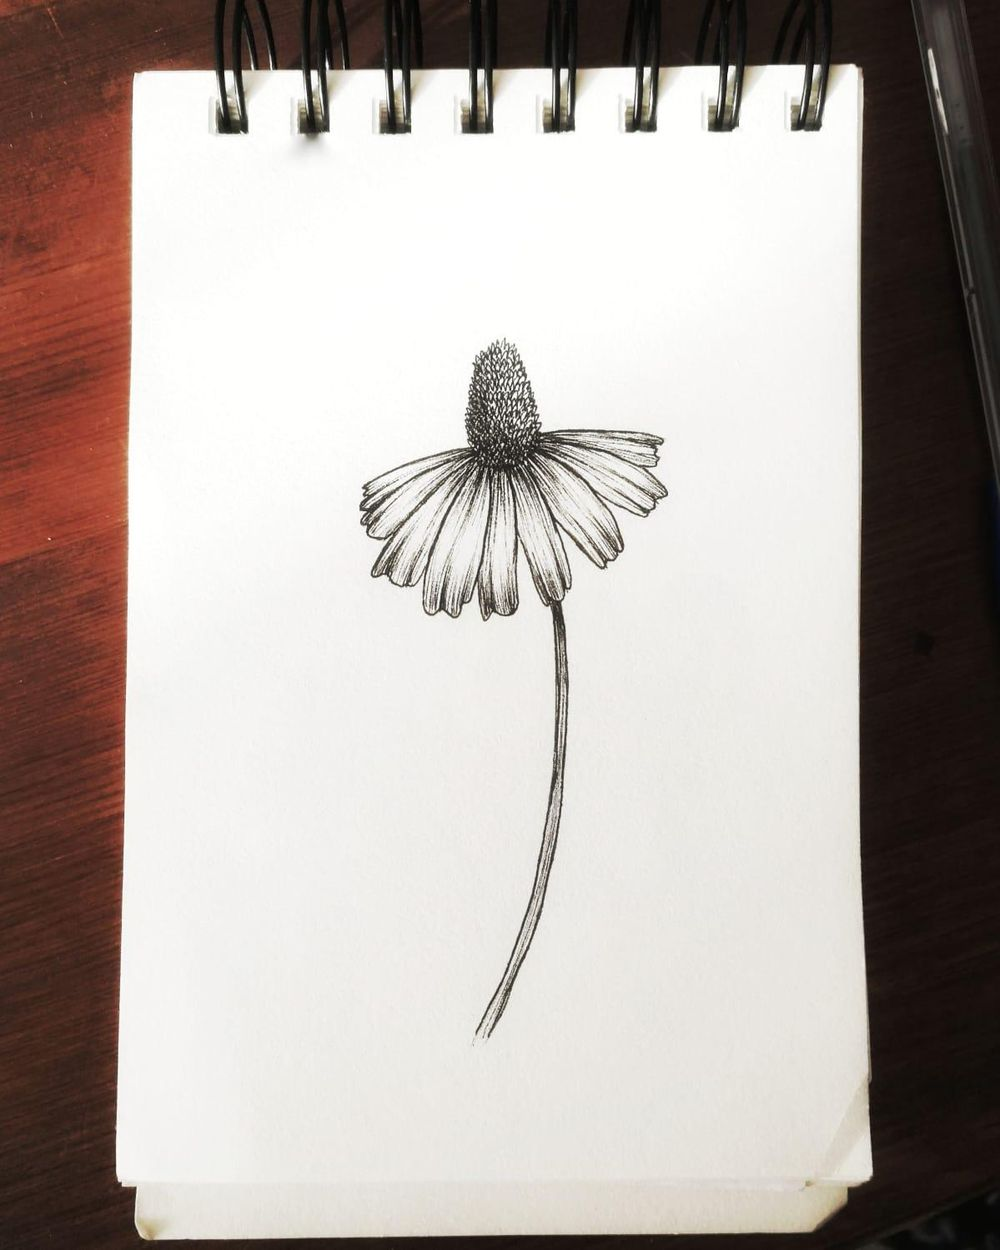 Coneflowers - image 2 - student project